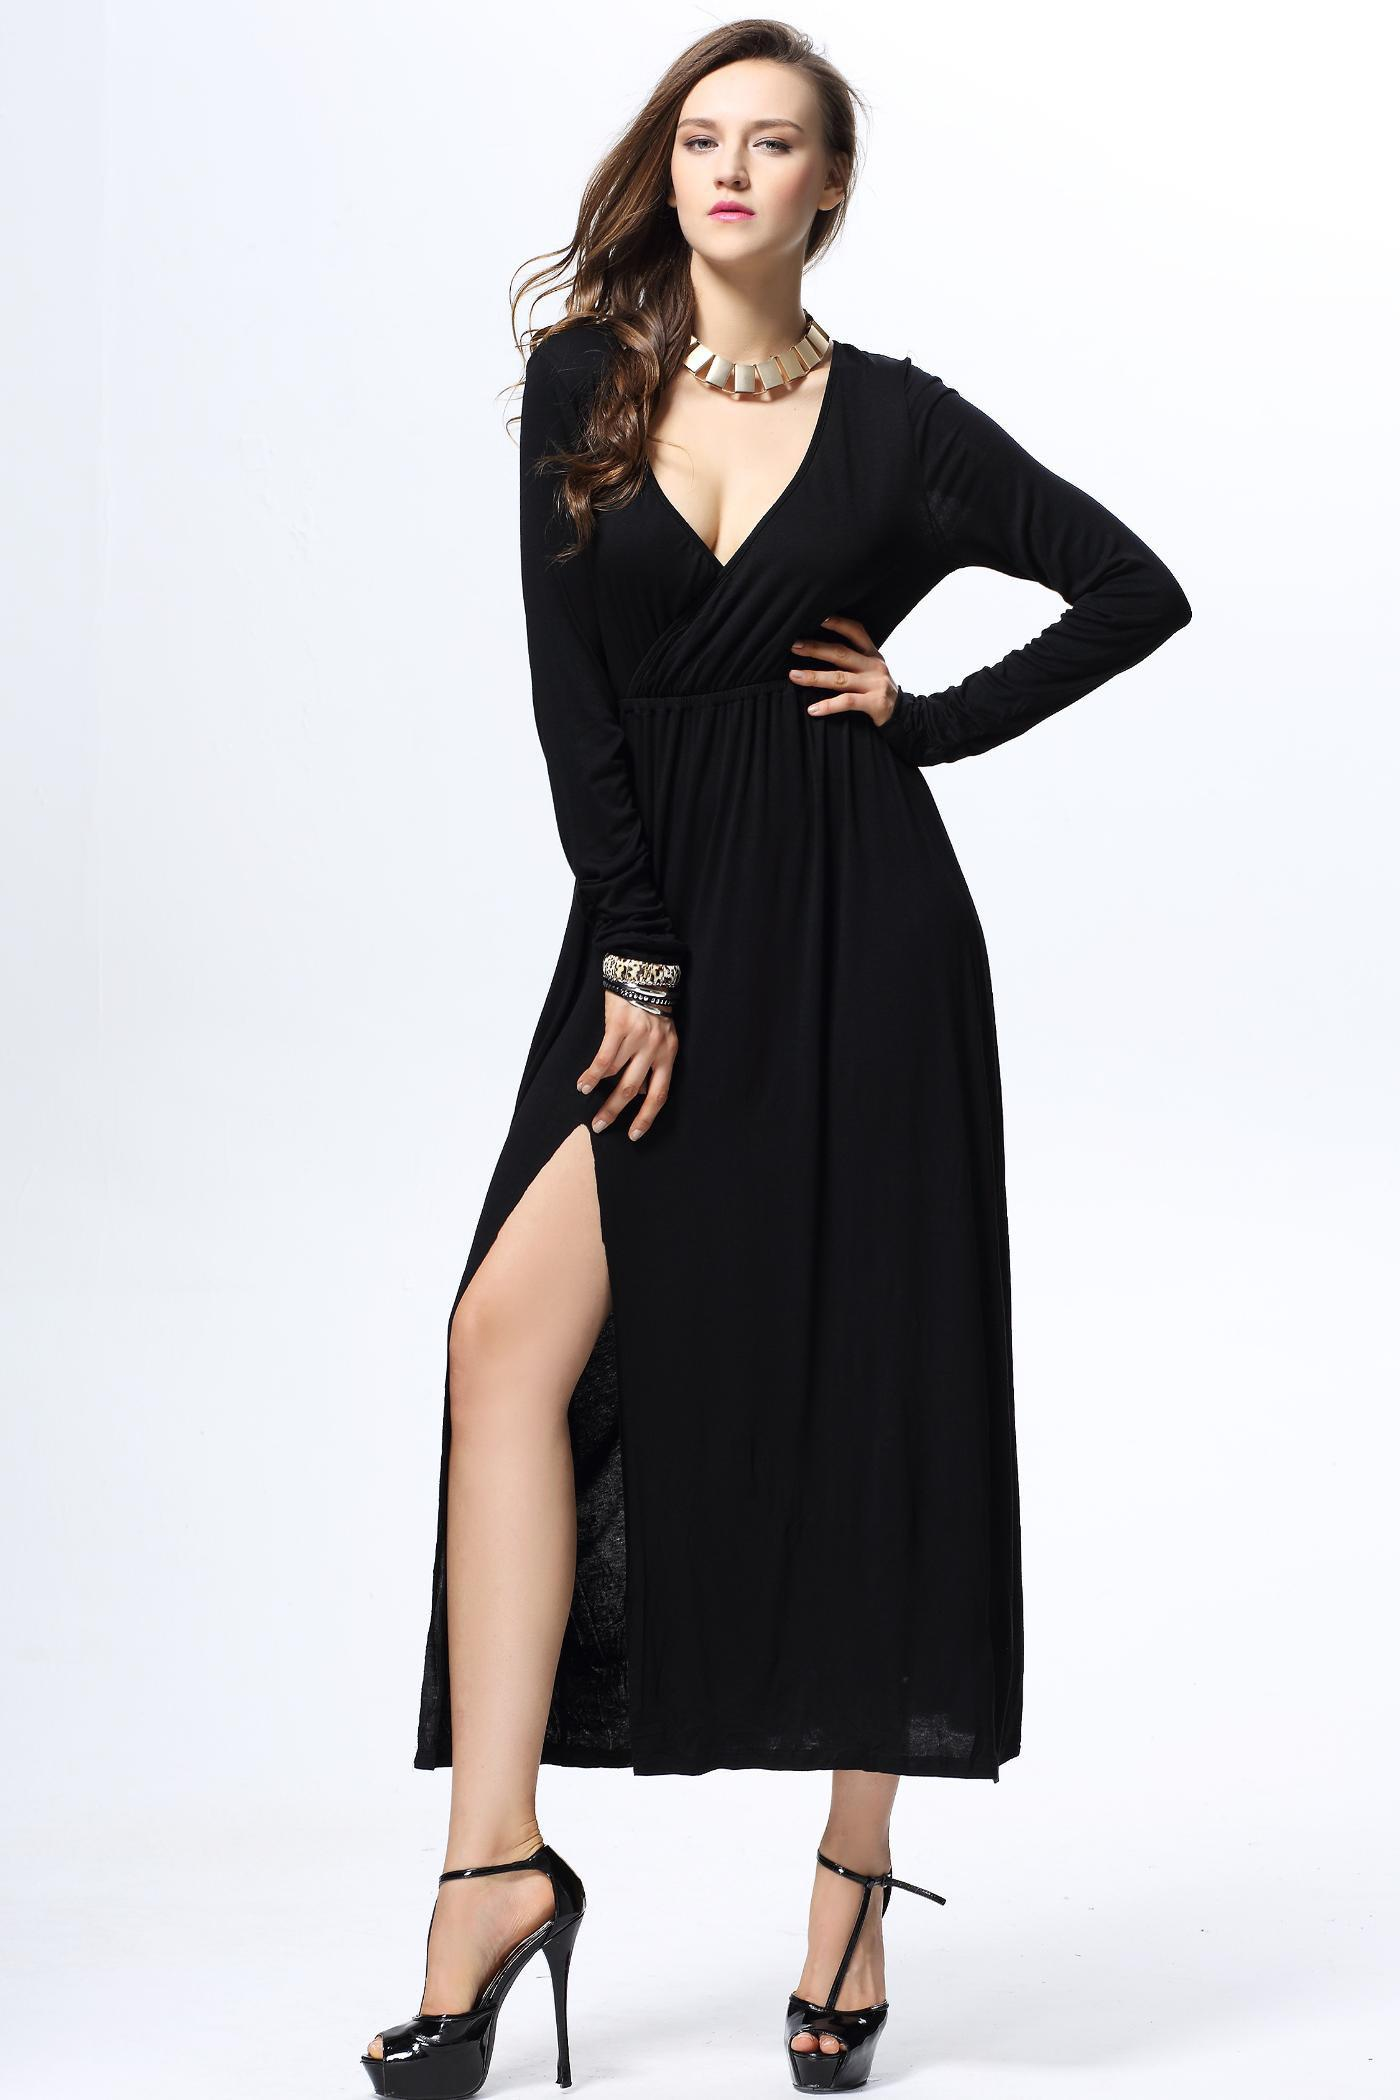 Women's Charming Furcal Embellished Long Sleeves Plunging Neck Black Dress